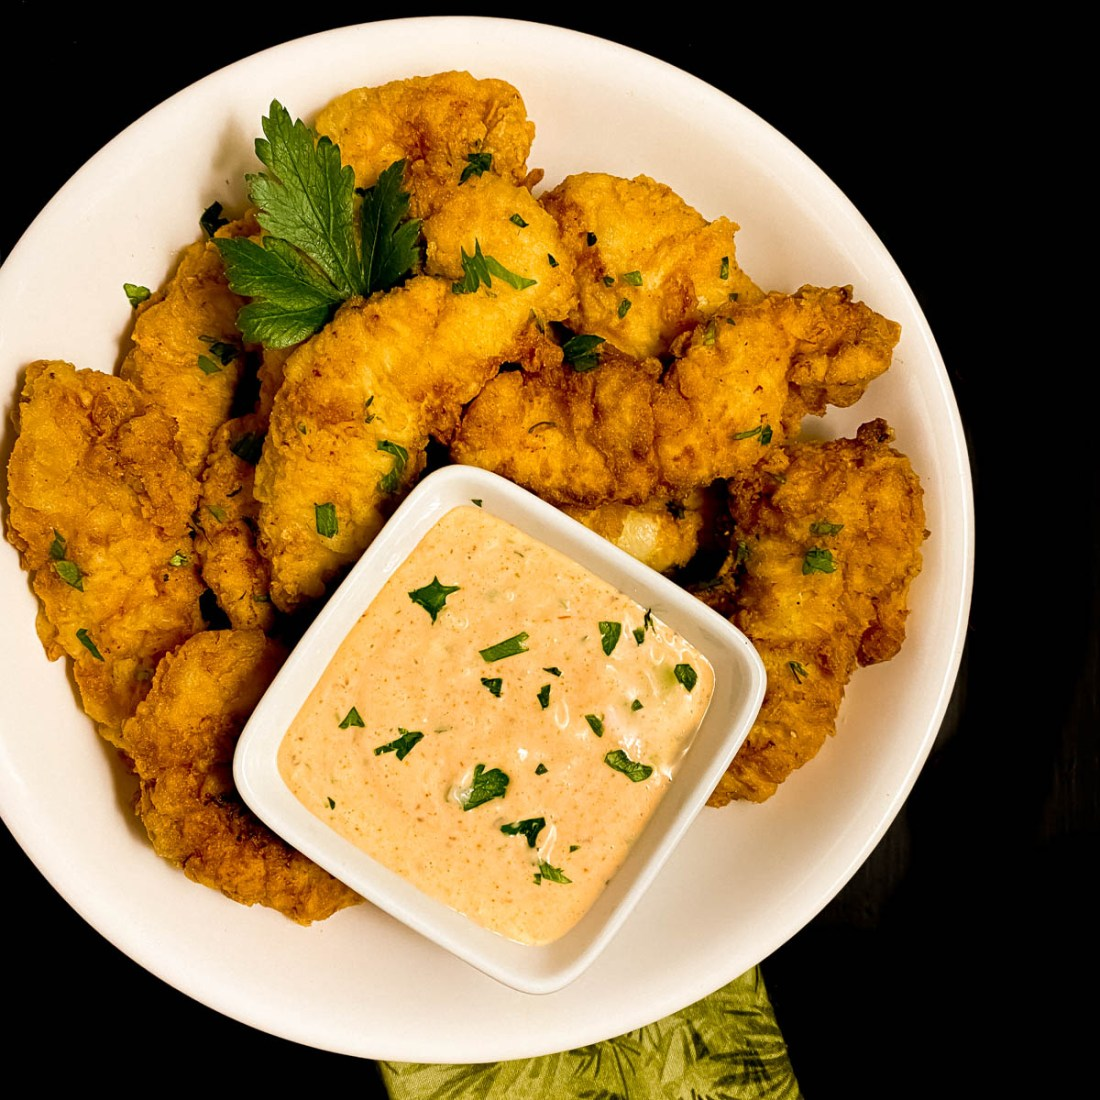 A round white bowl with Cajun fried chicken tenders and remoulade sauce.